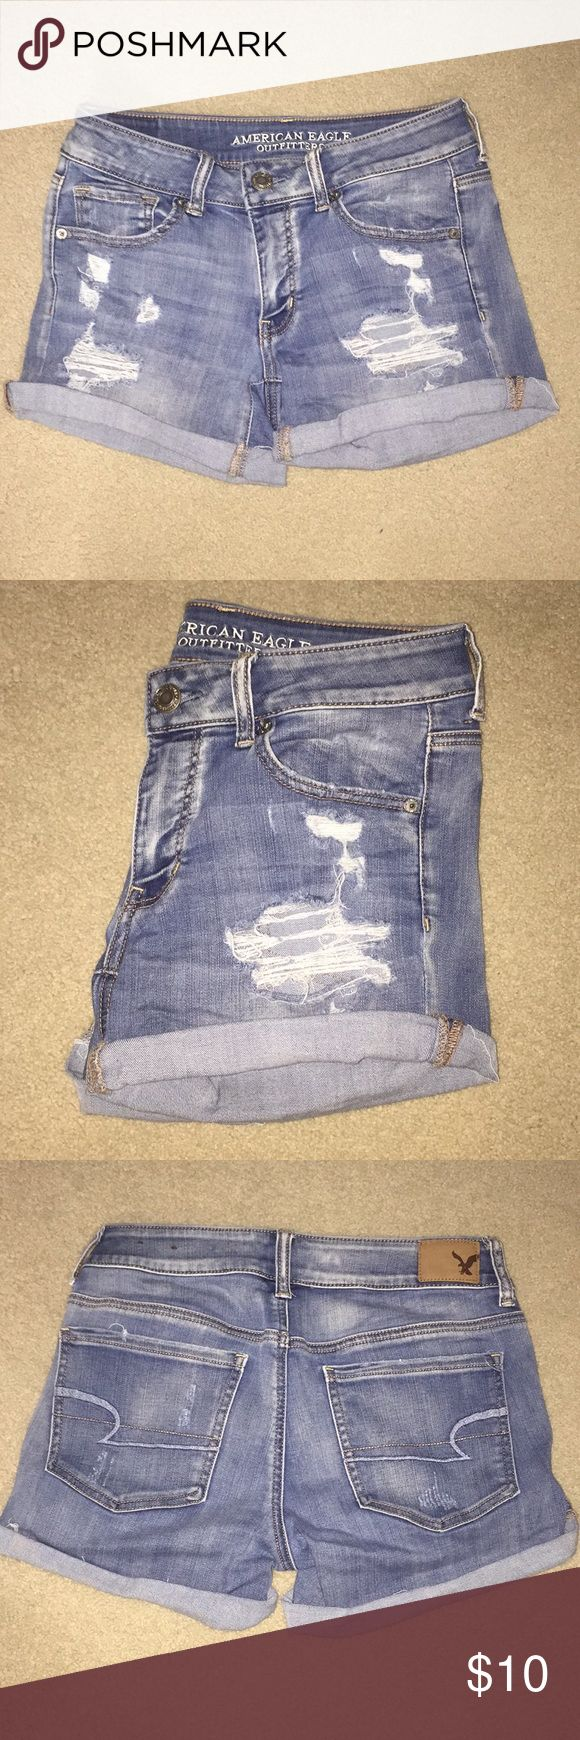 Distressed Denim American Eagle Shorts Midi Shorts but can be cuffed to any length desired! Stretchy to fit best! Offers are welcome! Still Available! American Eagle Outfitters Shorts Jean Shorts